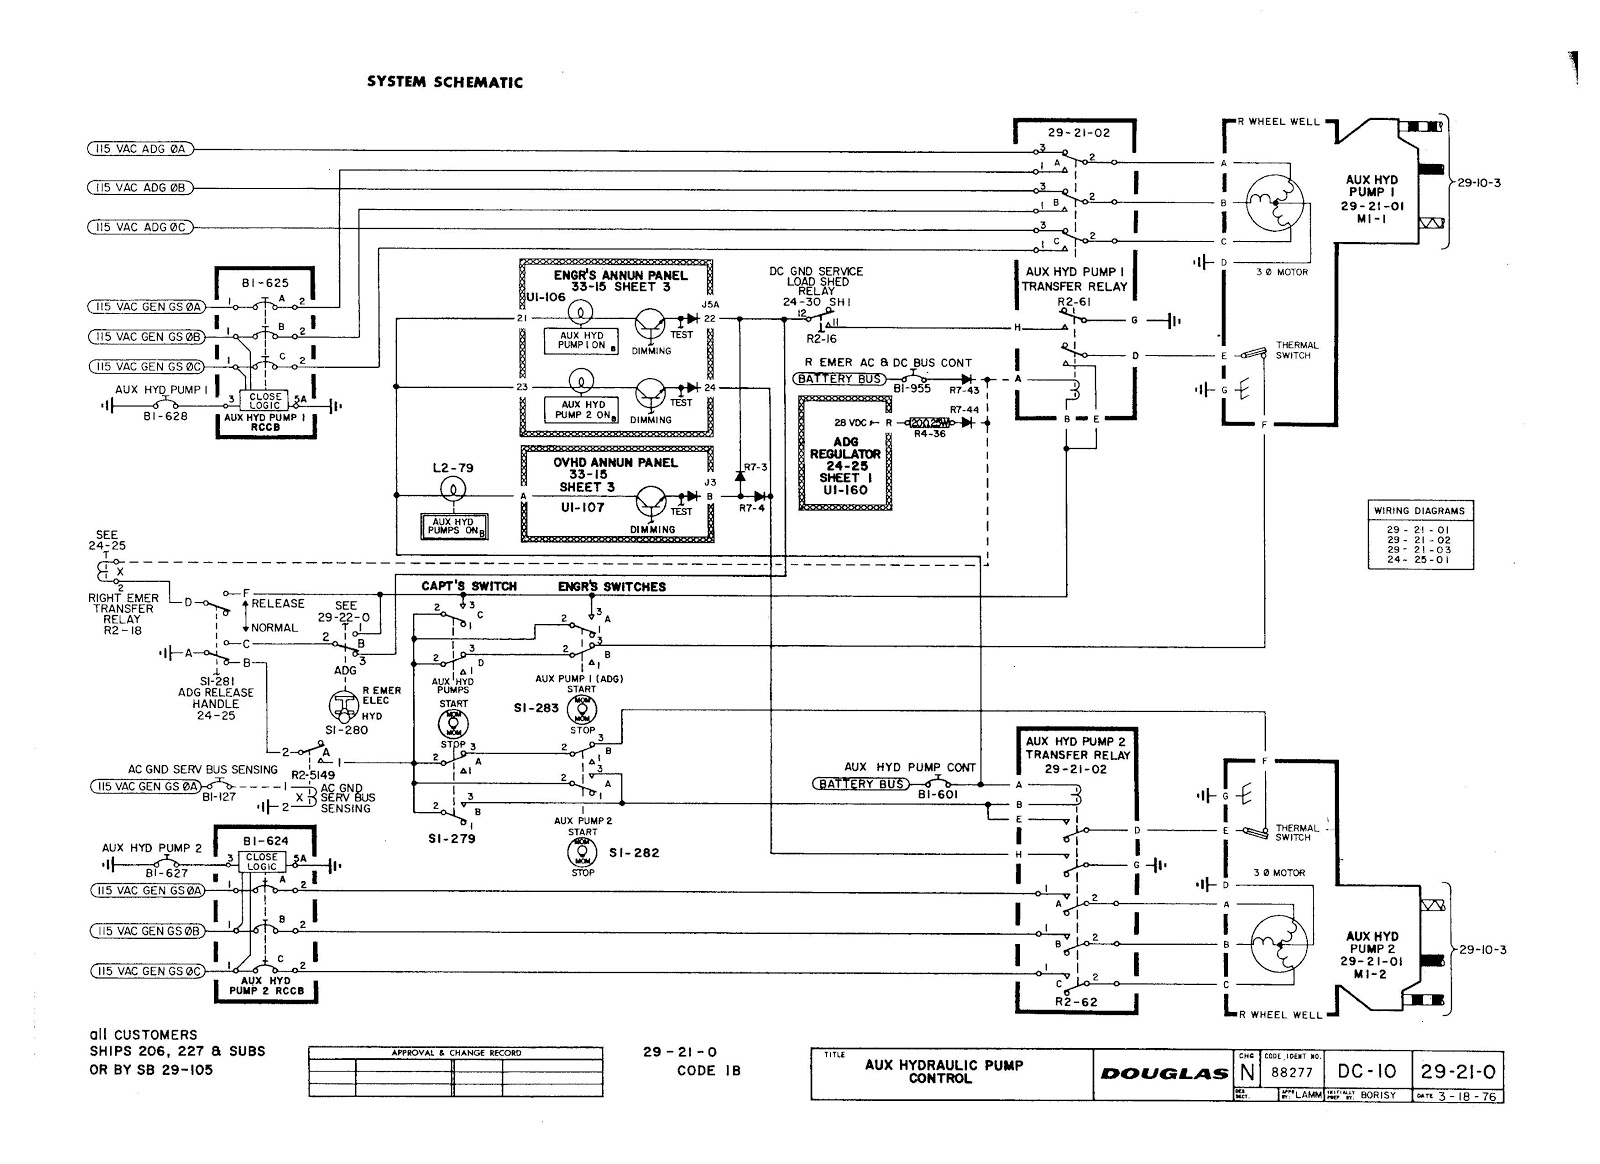 wiring diagram for a airplane wiring diagram expert aircraft wire diagram wiring diagram compilation wiring diagram [ 1600 x 1164 Pixel ]